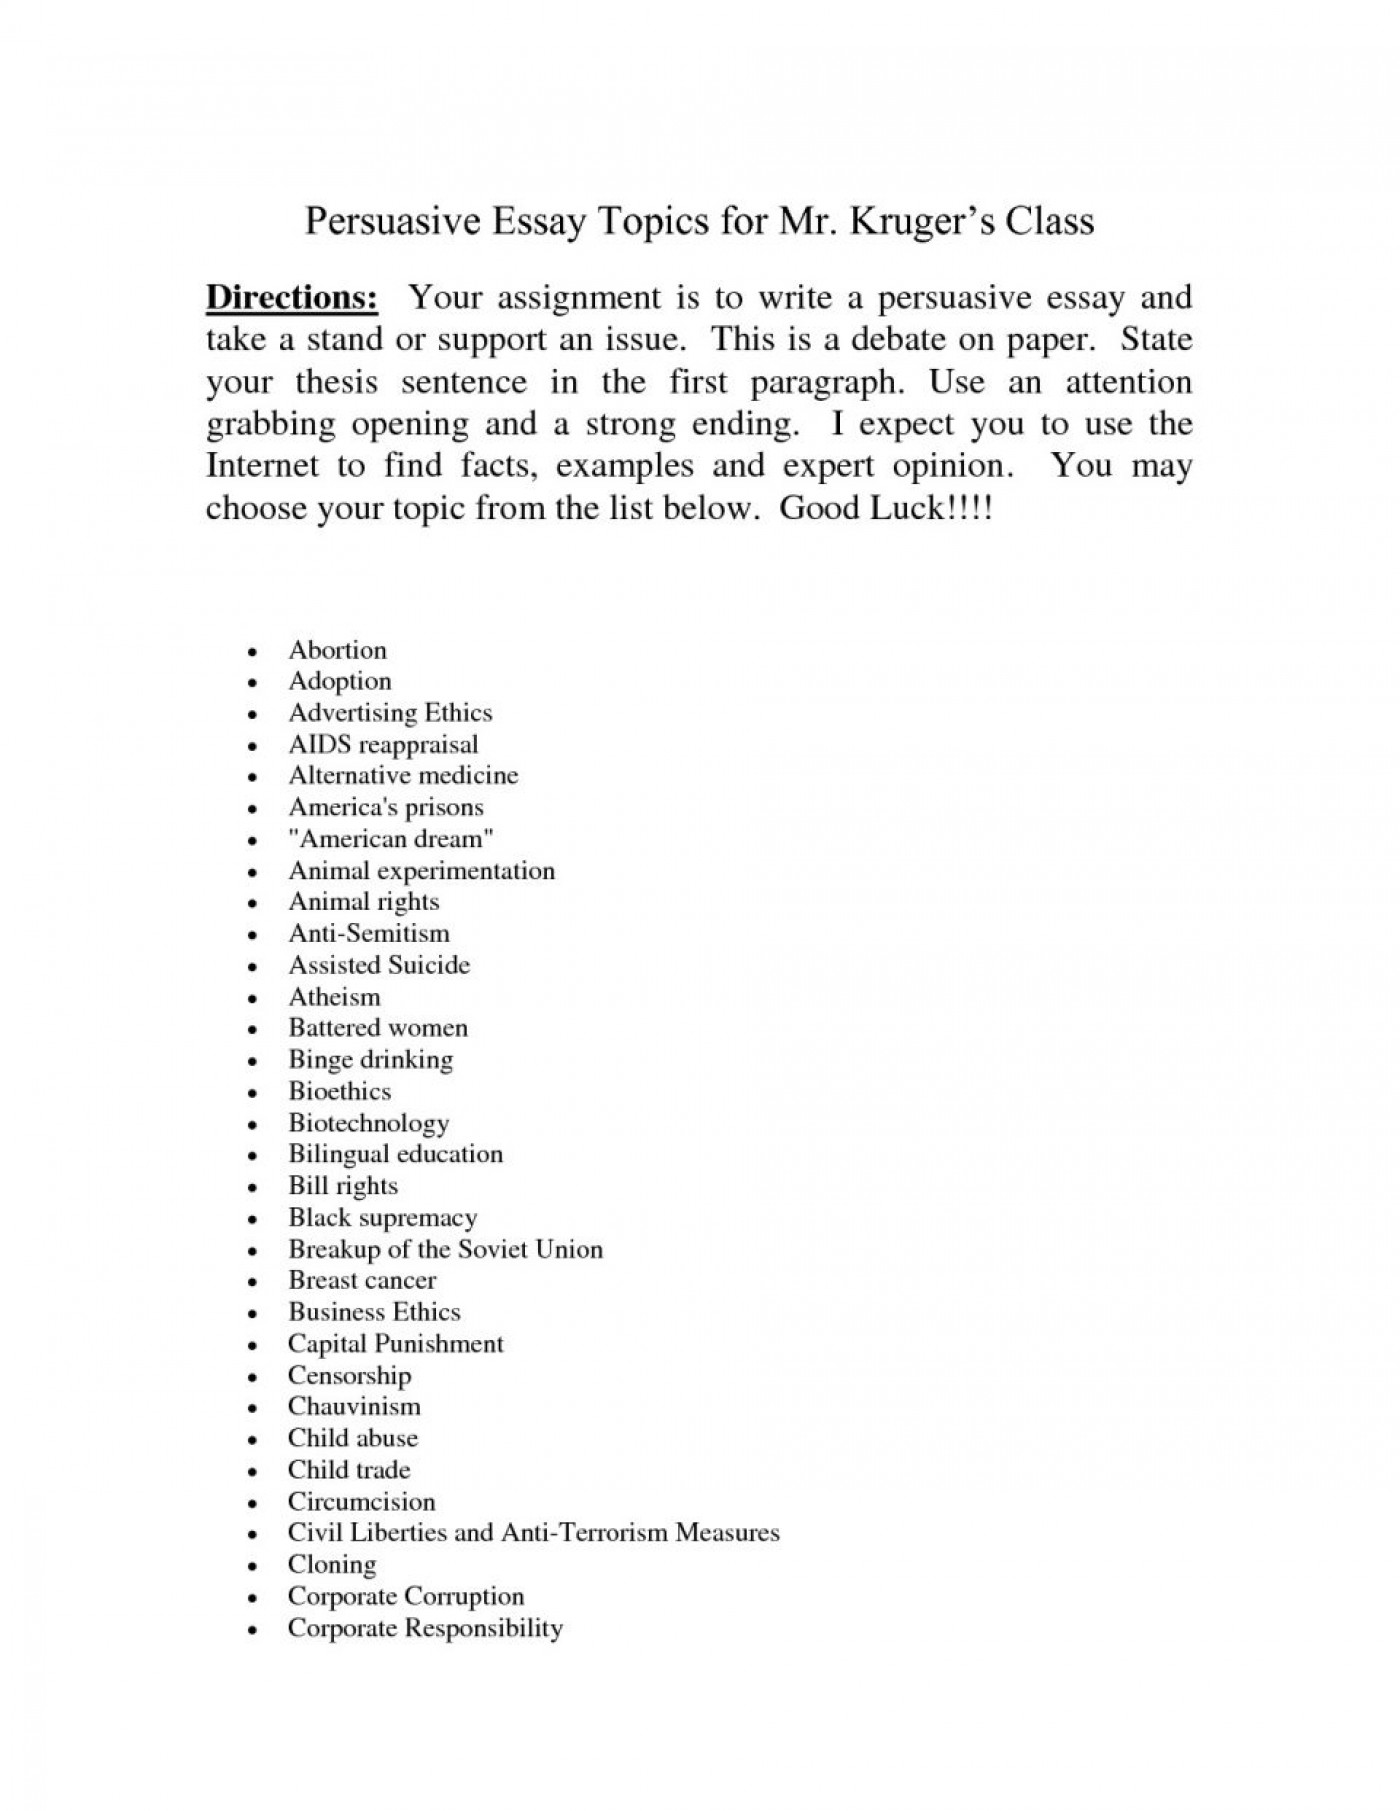 011 Research Paper Good Topic For Essay Barca Fontanacountryinn Within Persuasive Narrative Topics To Write Abo Easy About Personal Descriptive Informative Singular History Reddit Argumentative Sports 1400